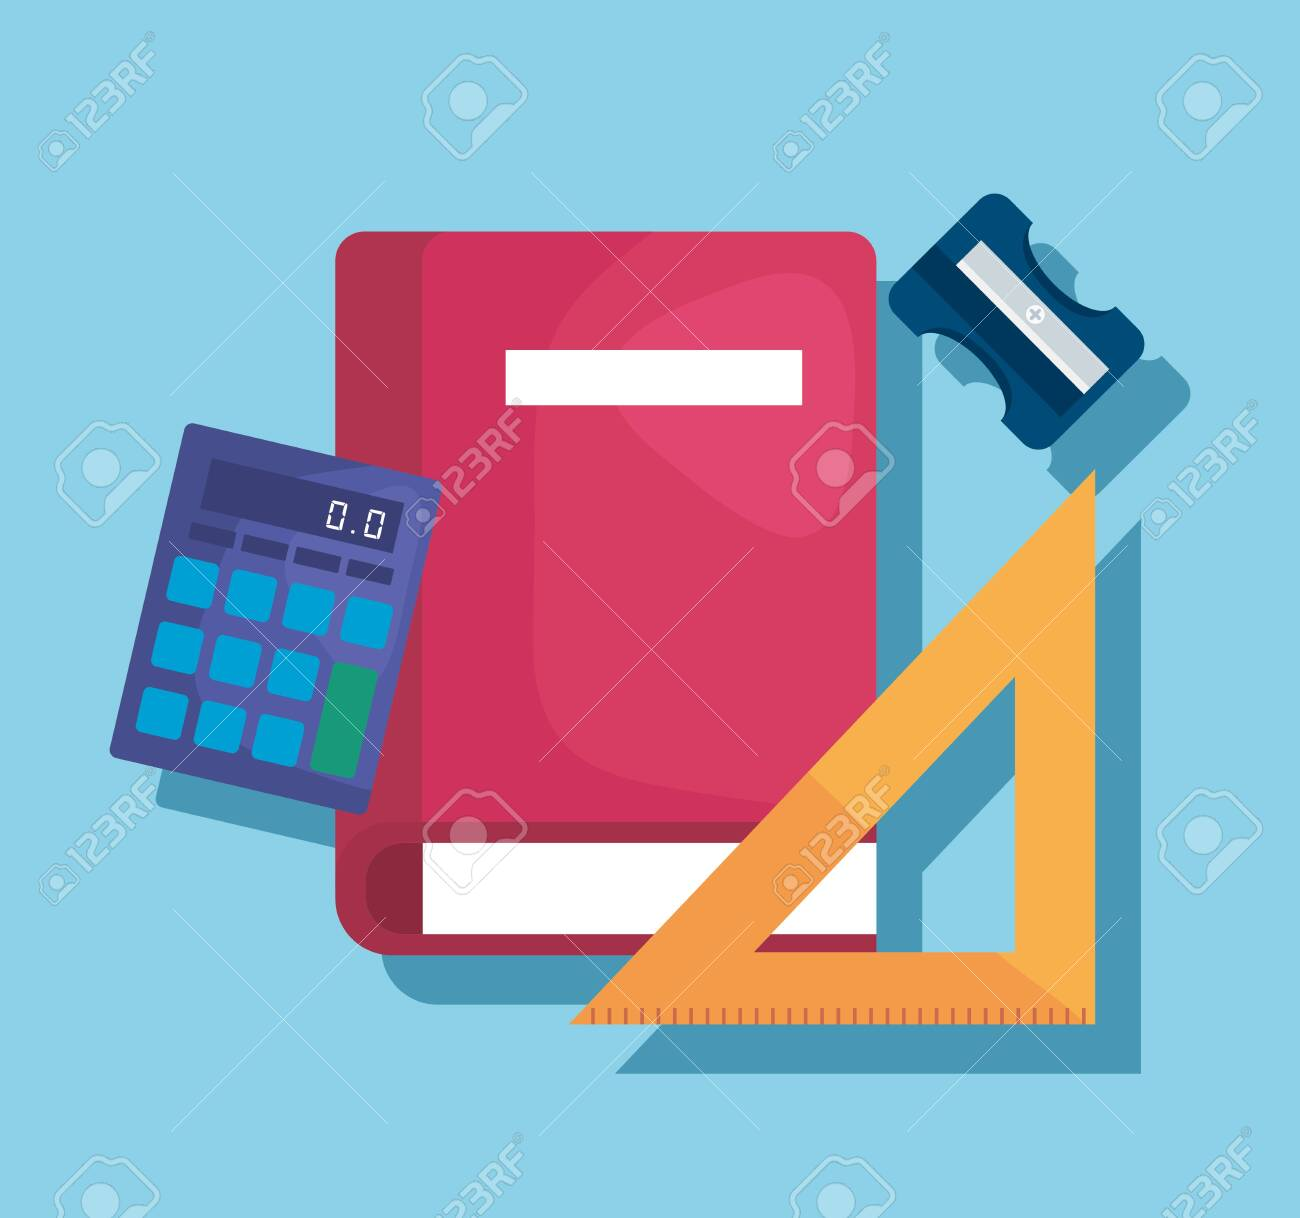 book with triangle ruler and calculator elementary suppies to back to school vector illustration - 128306391